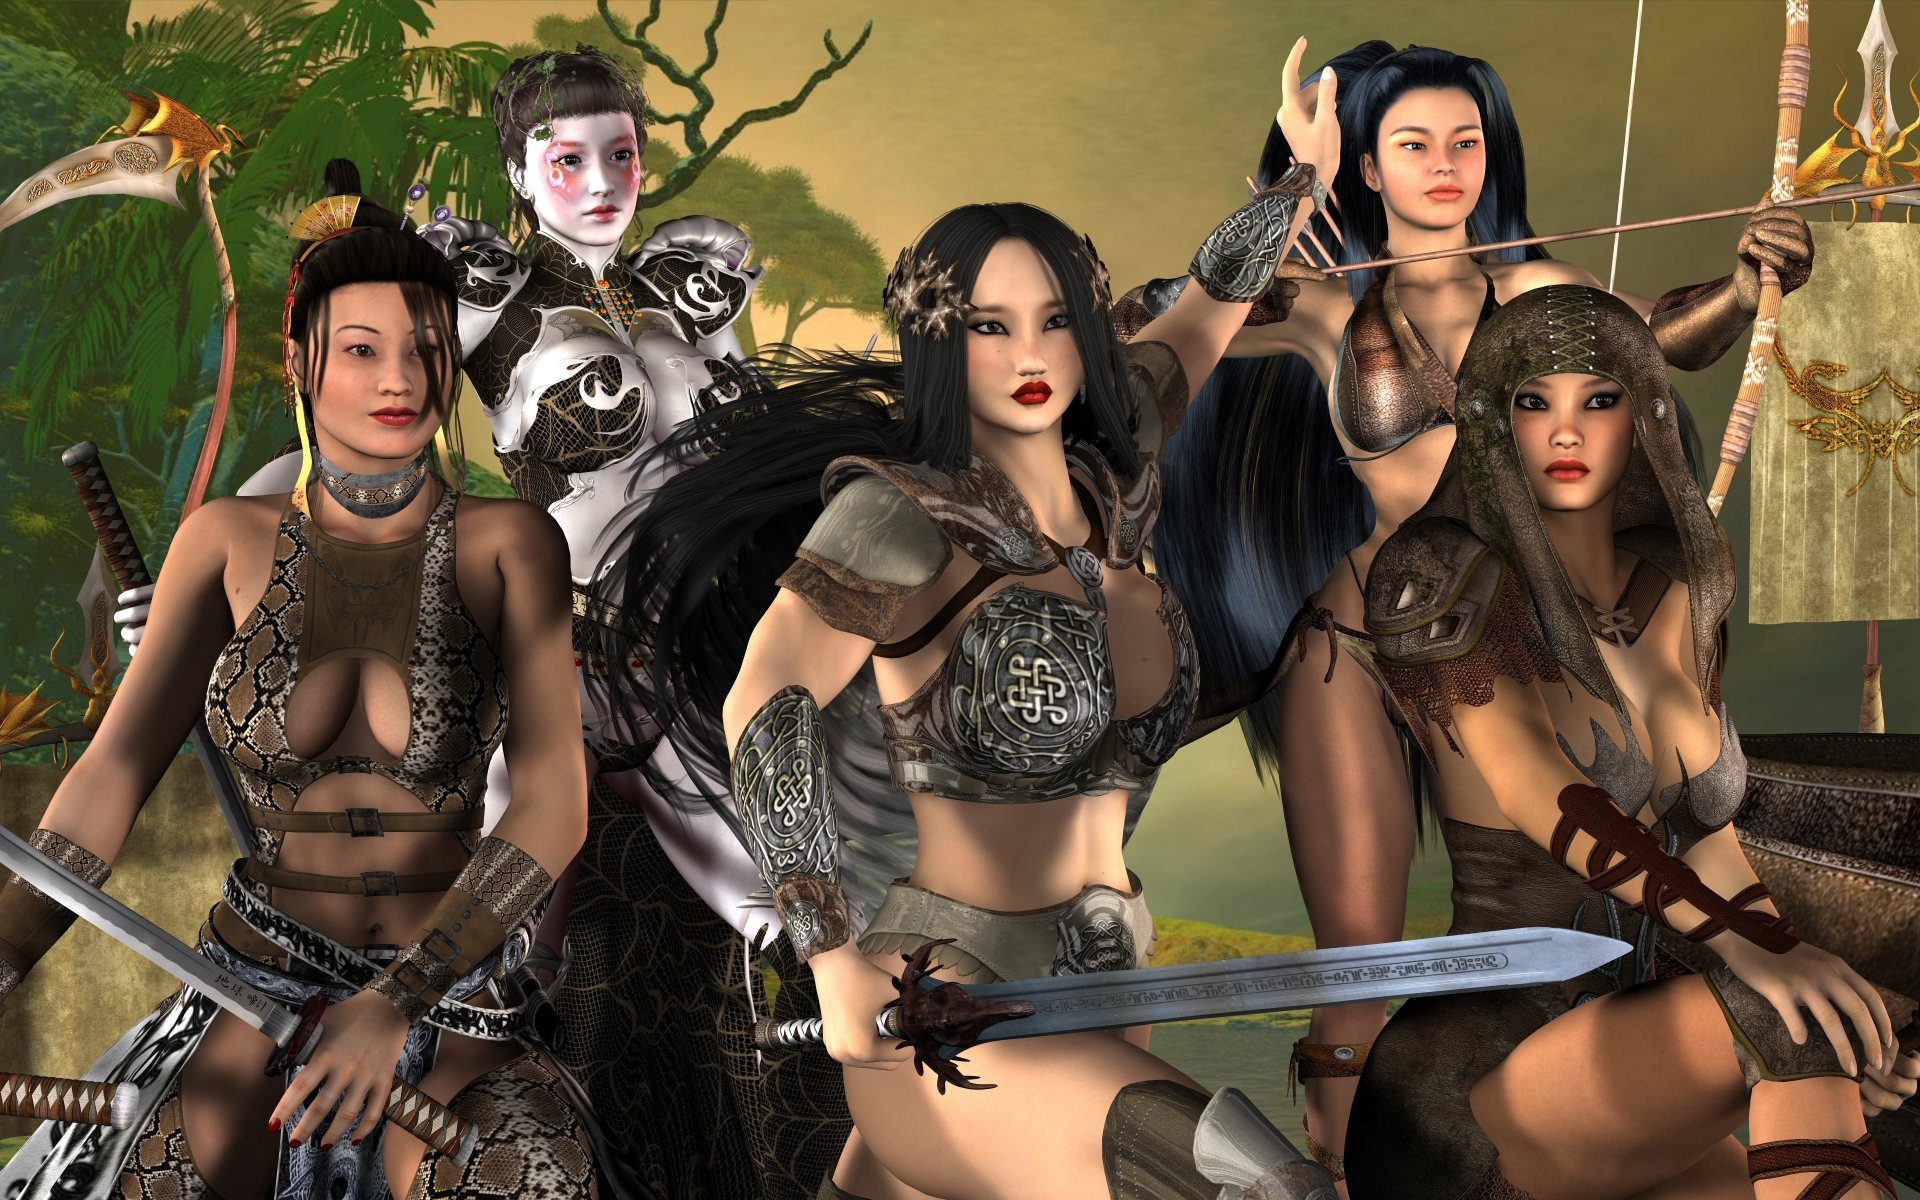 3d warrior chicks adult pic